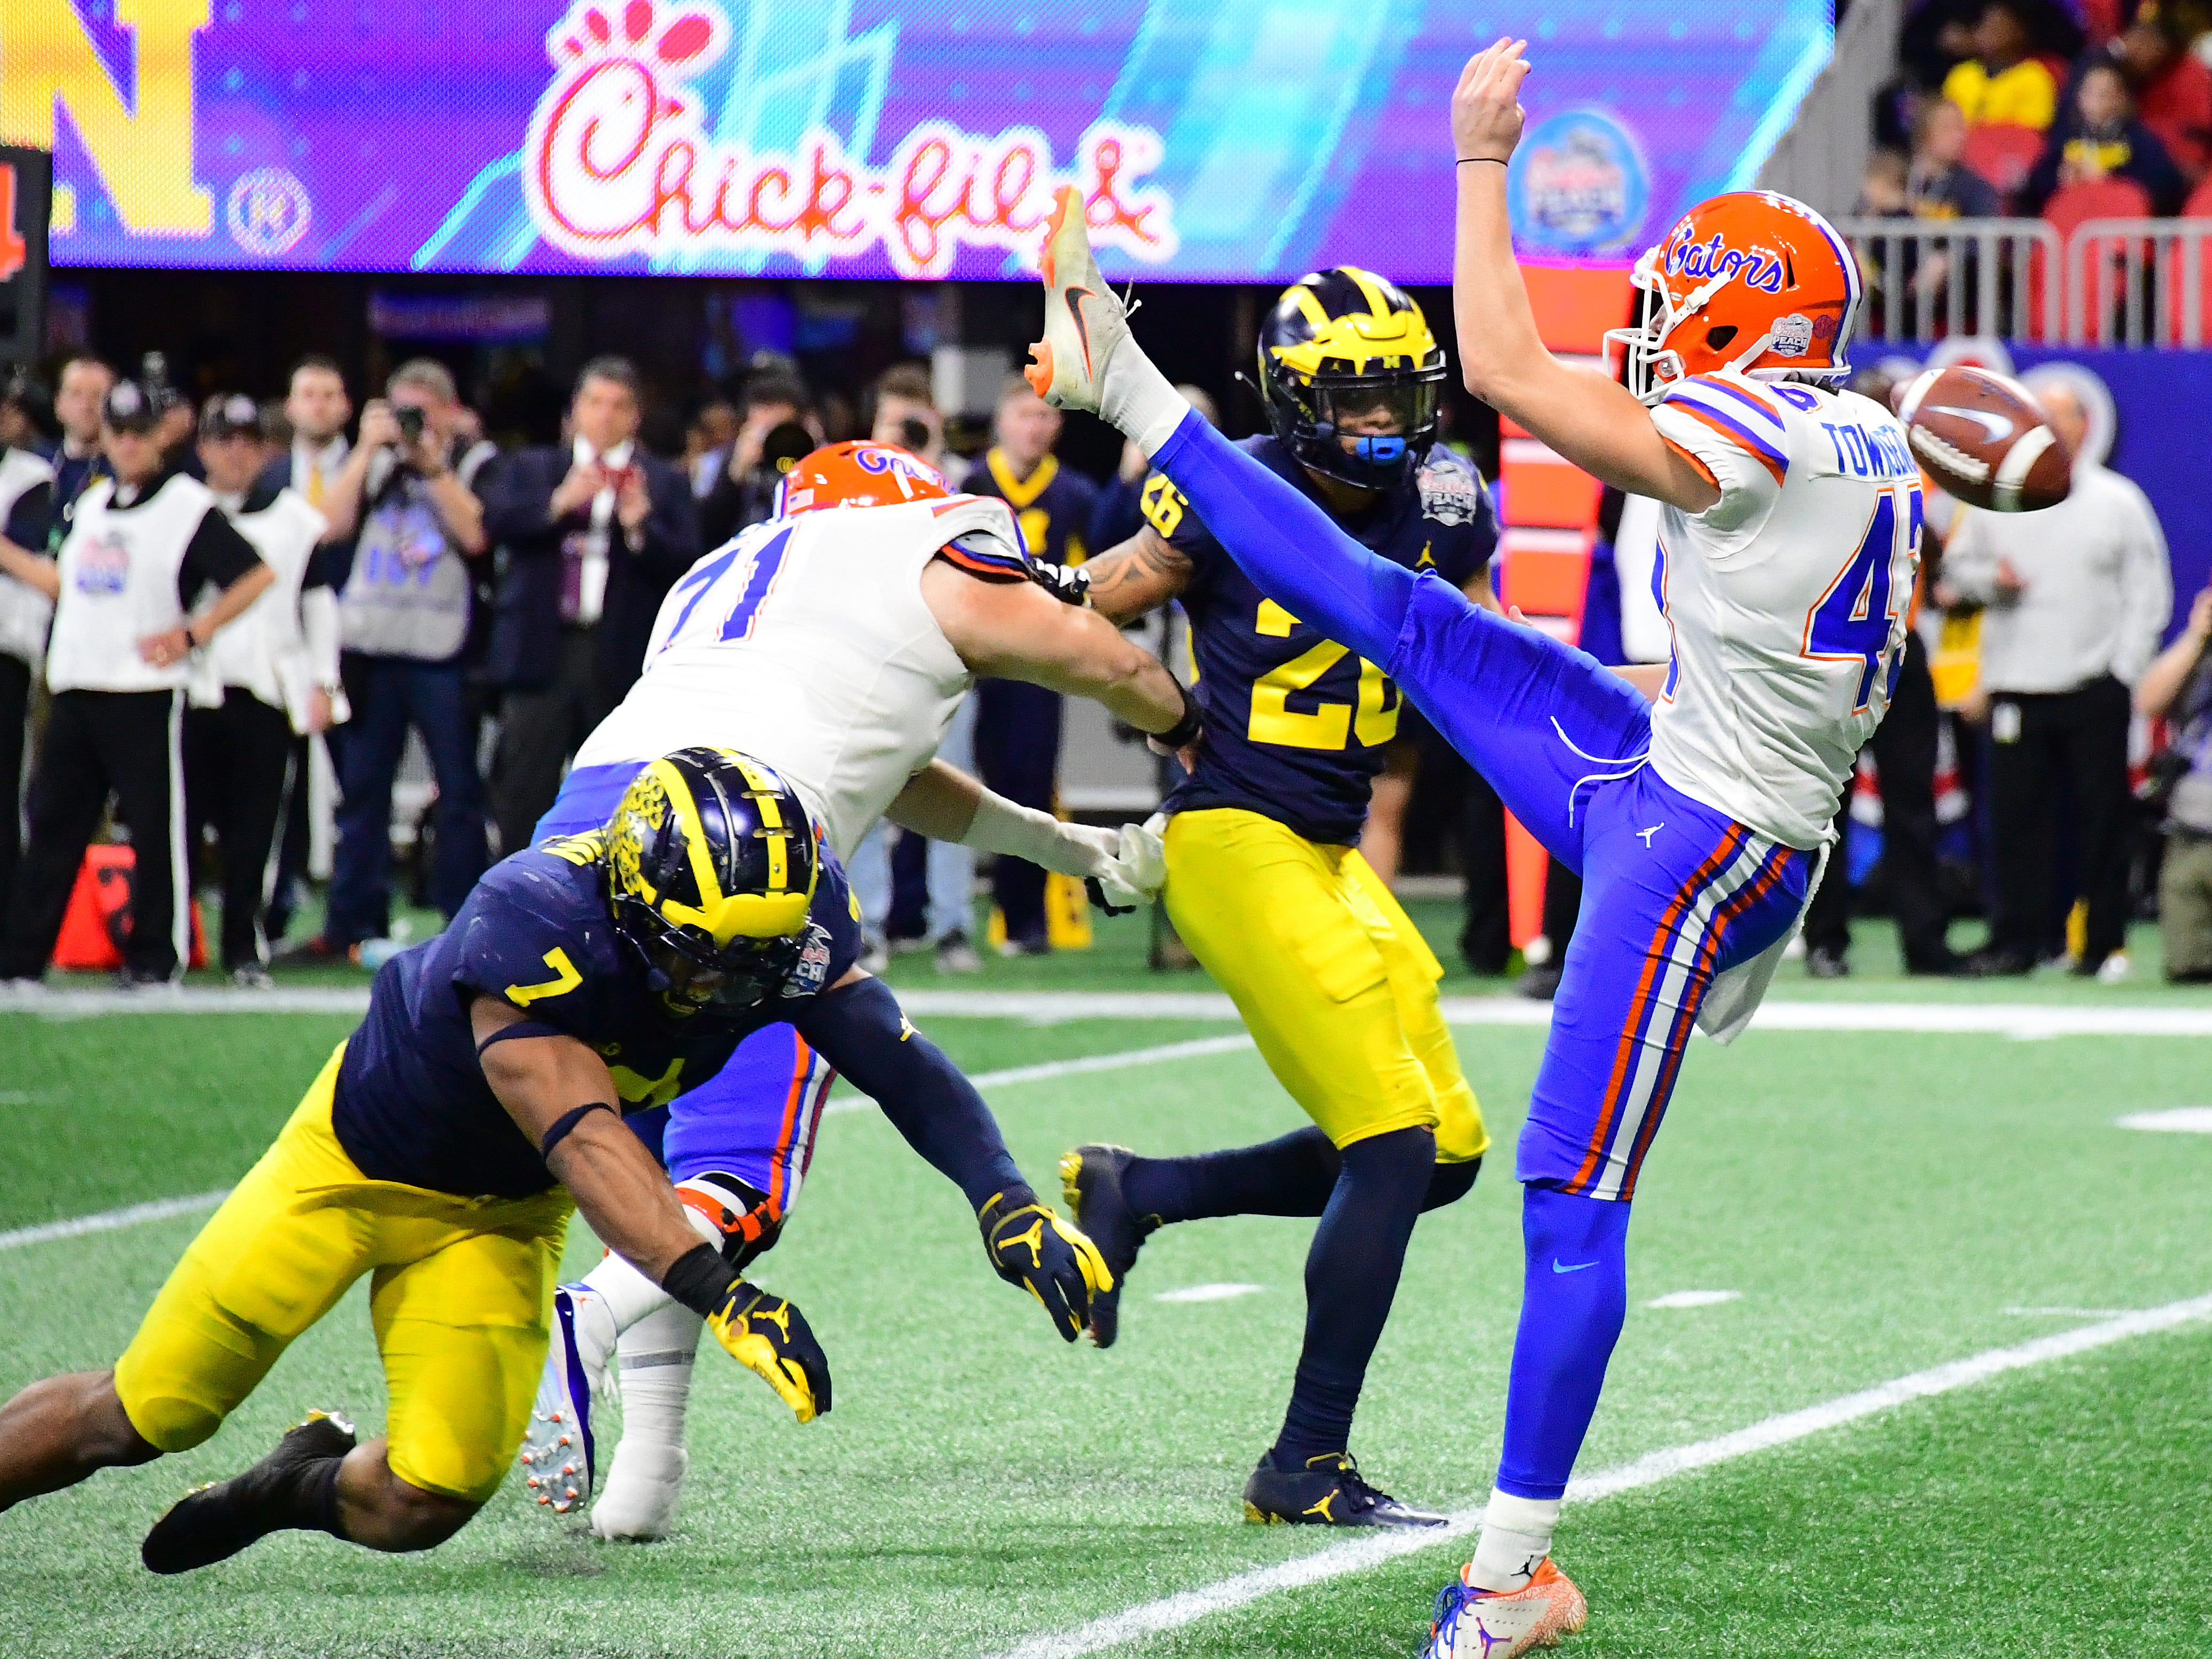 Florida punter Tommy Townsend has his punt blocked by Michigan linebacker Khaleke Hudson in the fourth quarter during U-M's 41-15 loss in the Peach Bowl on Saturday, Dec. 29, 2018, in Atlanta.